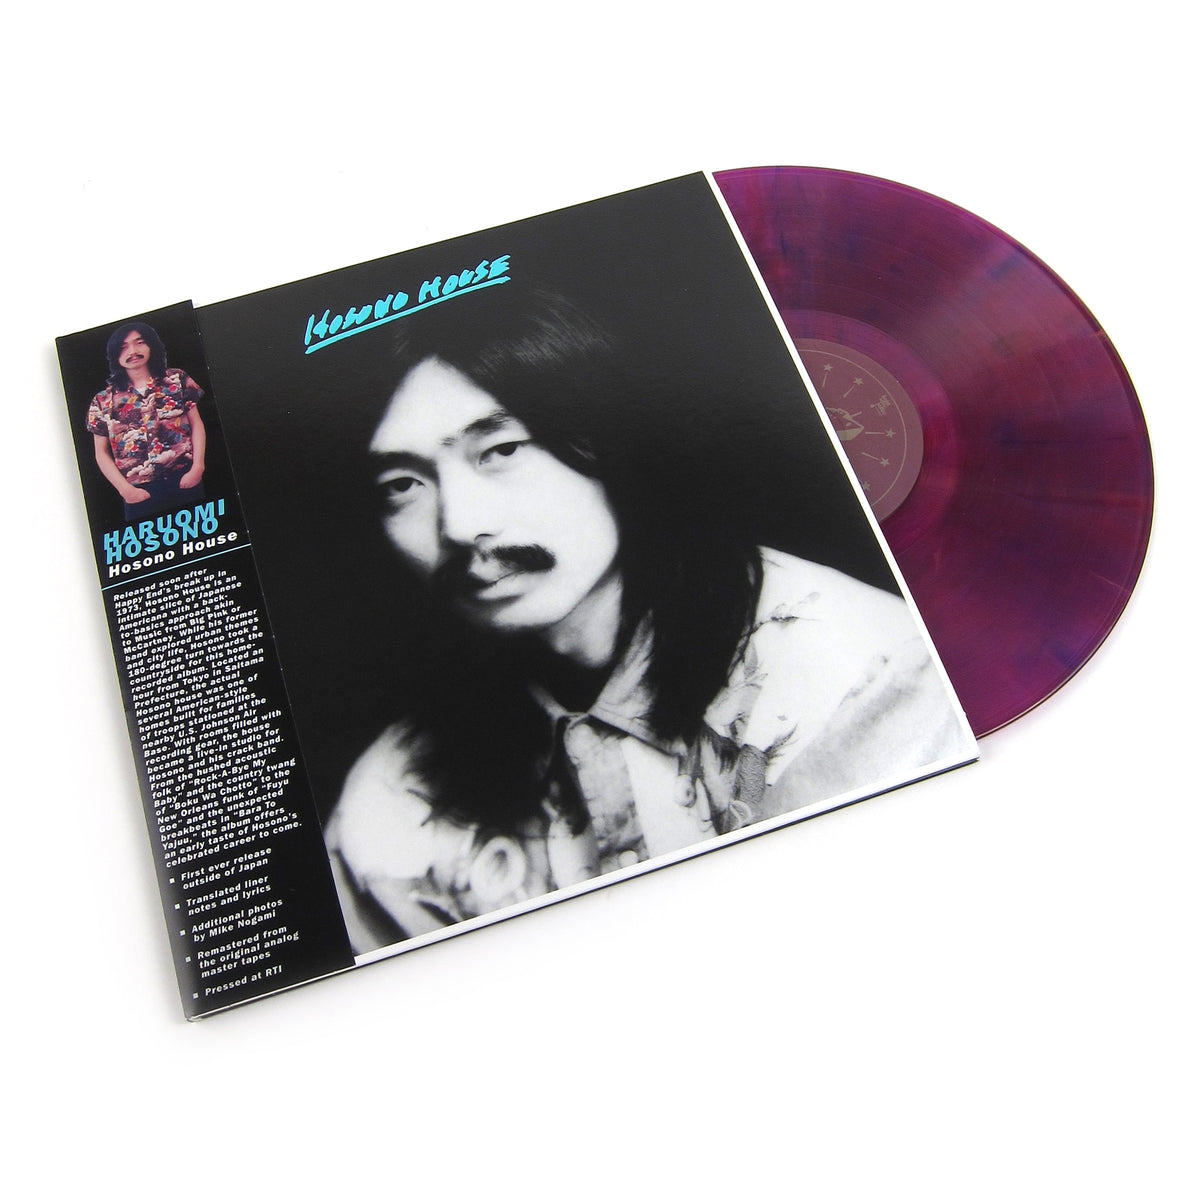 Haruomi Hosono: Hosono House (Colored Vinyl) Vinyl LP